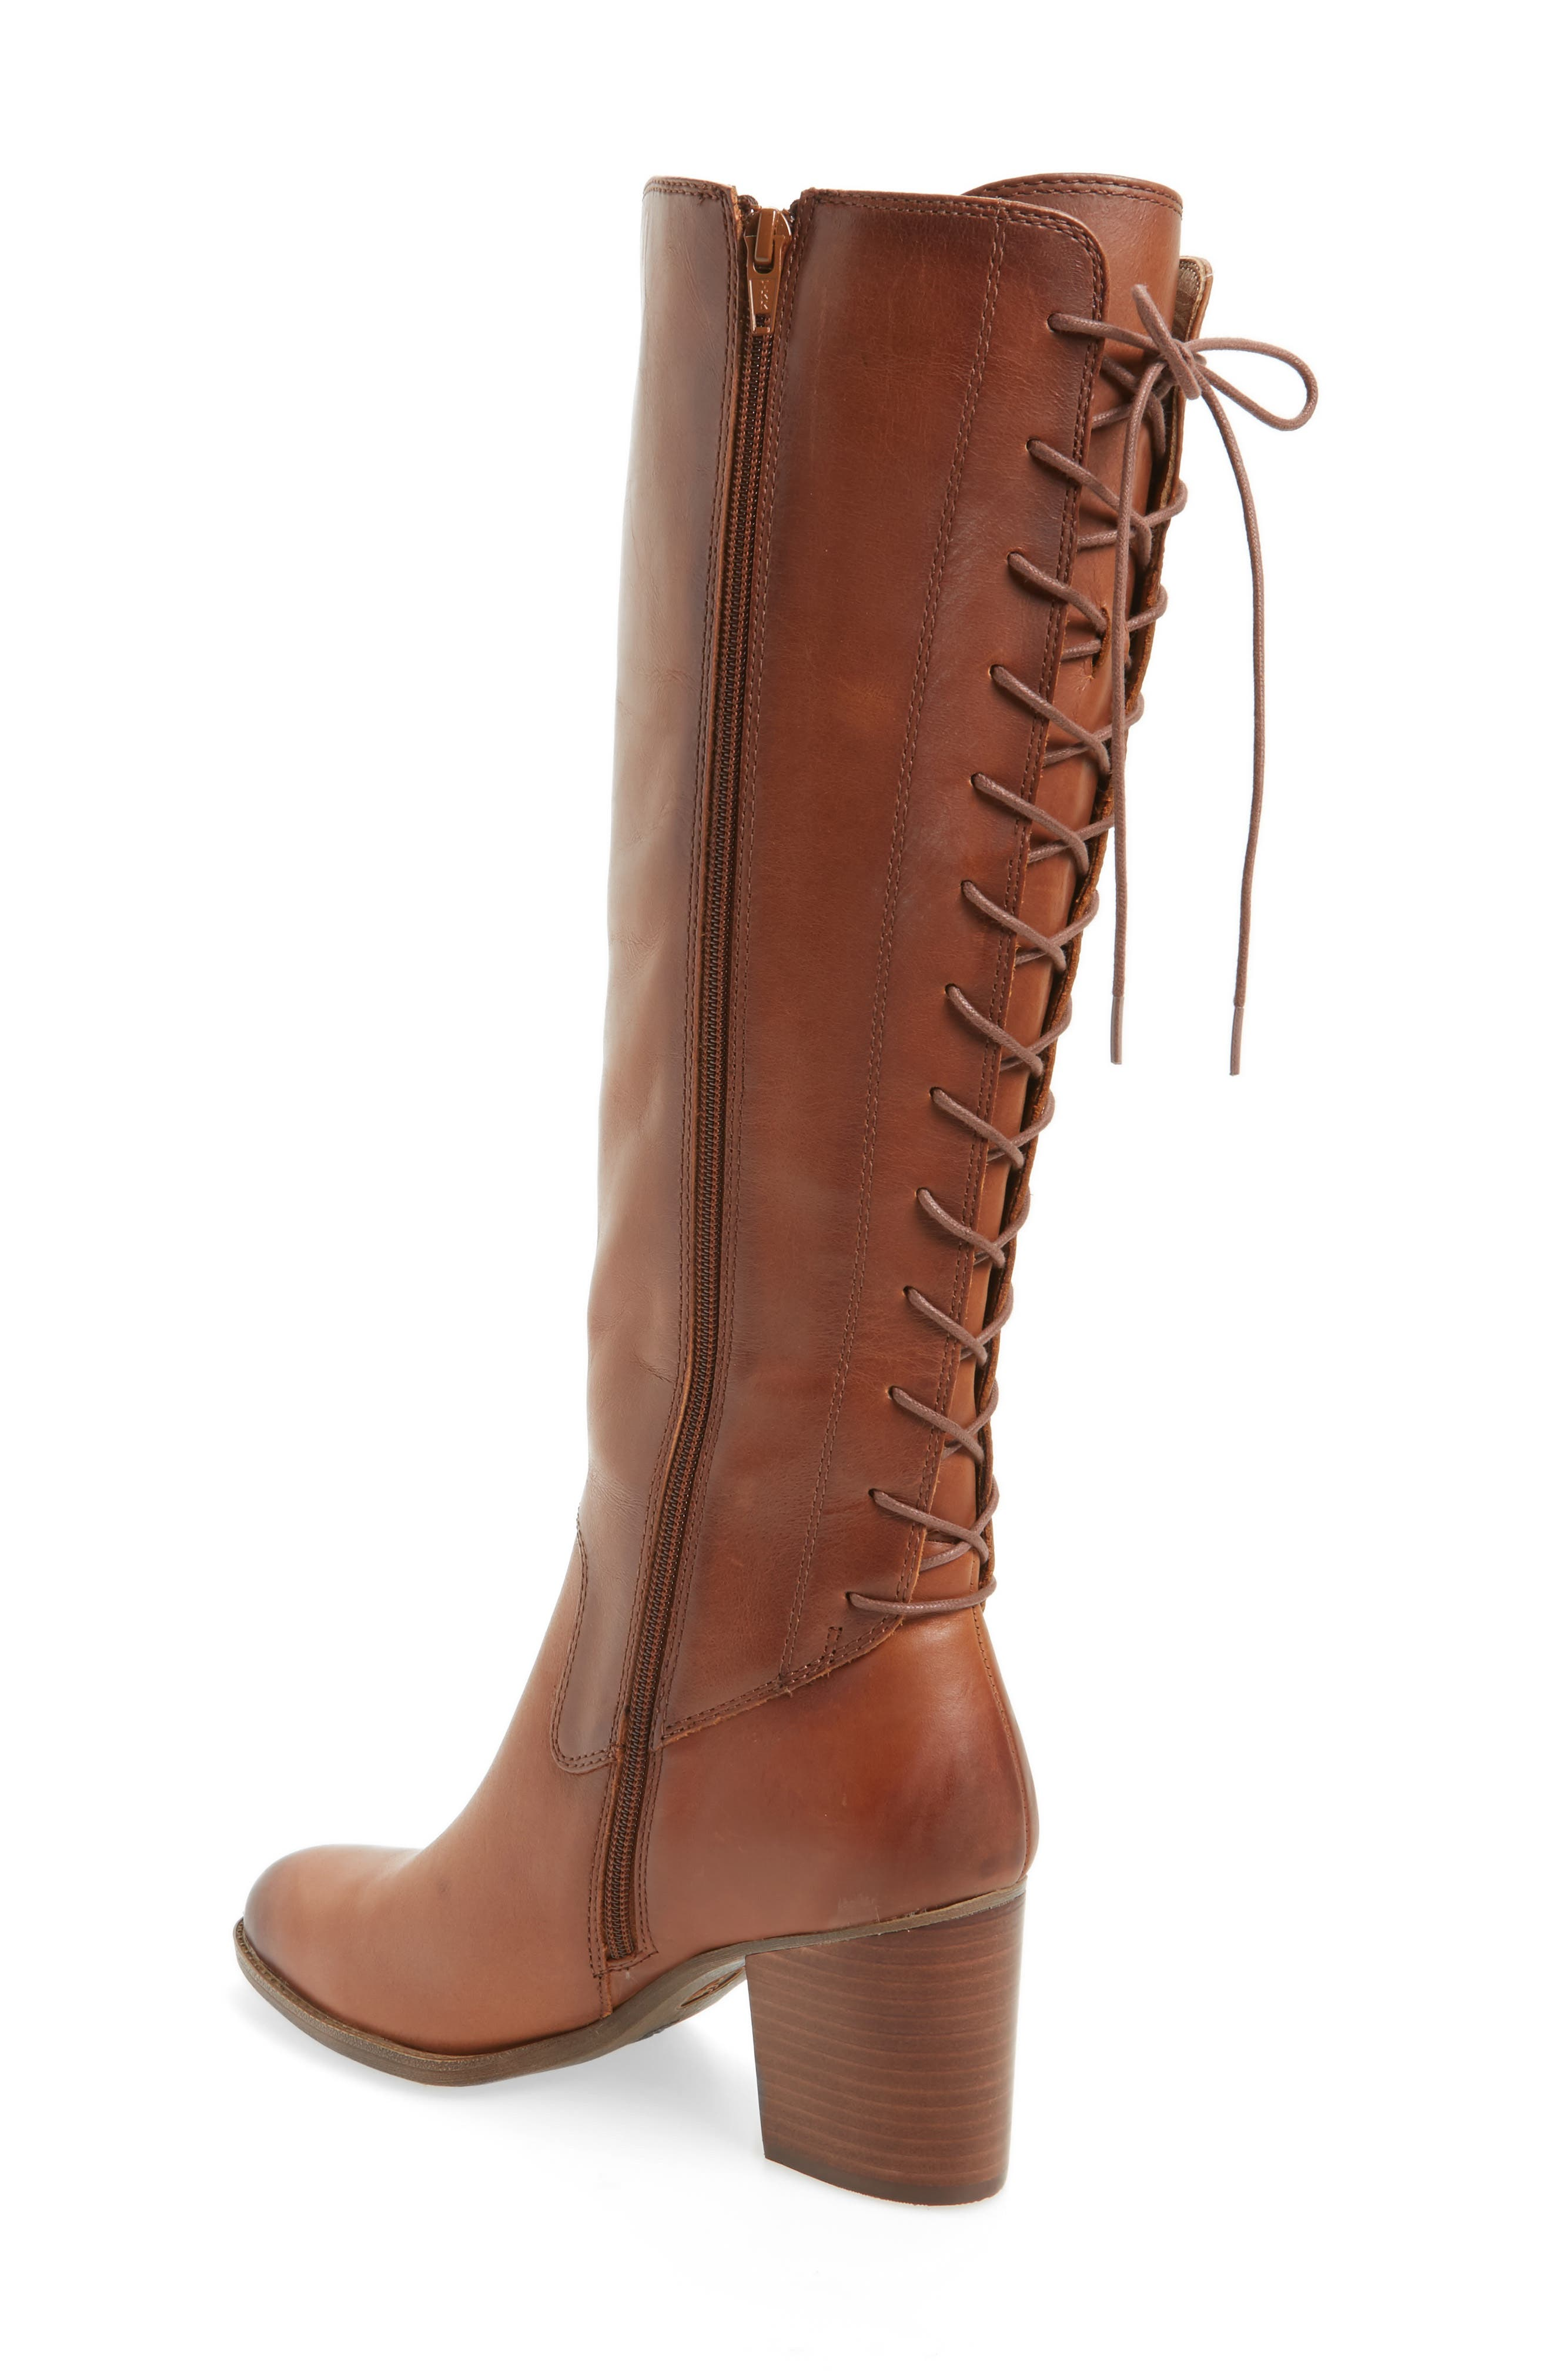 Wheaton Knee High Boot,                             Alternate thumbnail 2, color,                             200